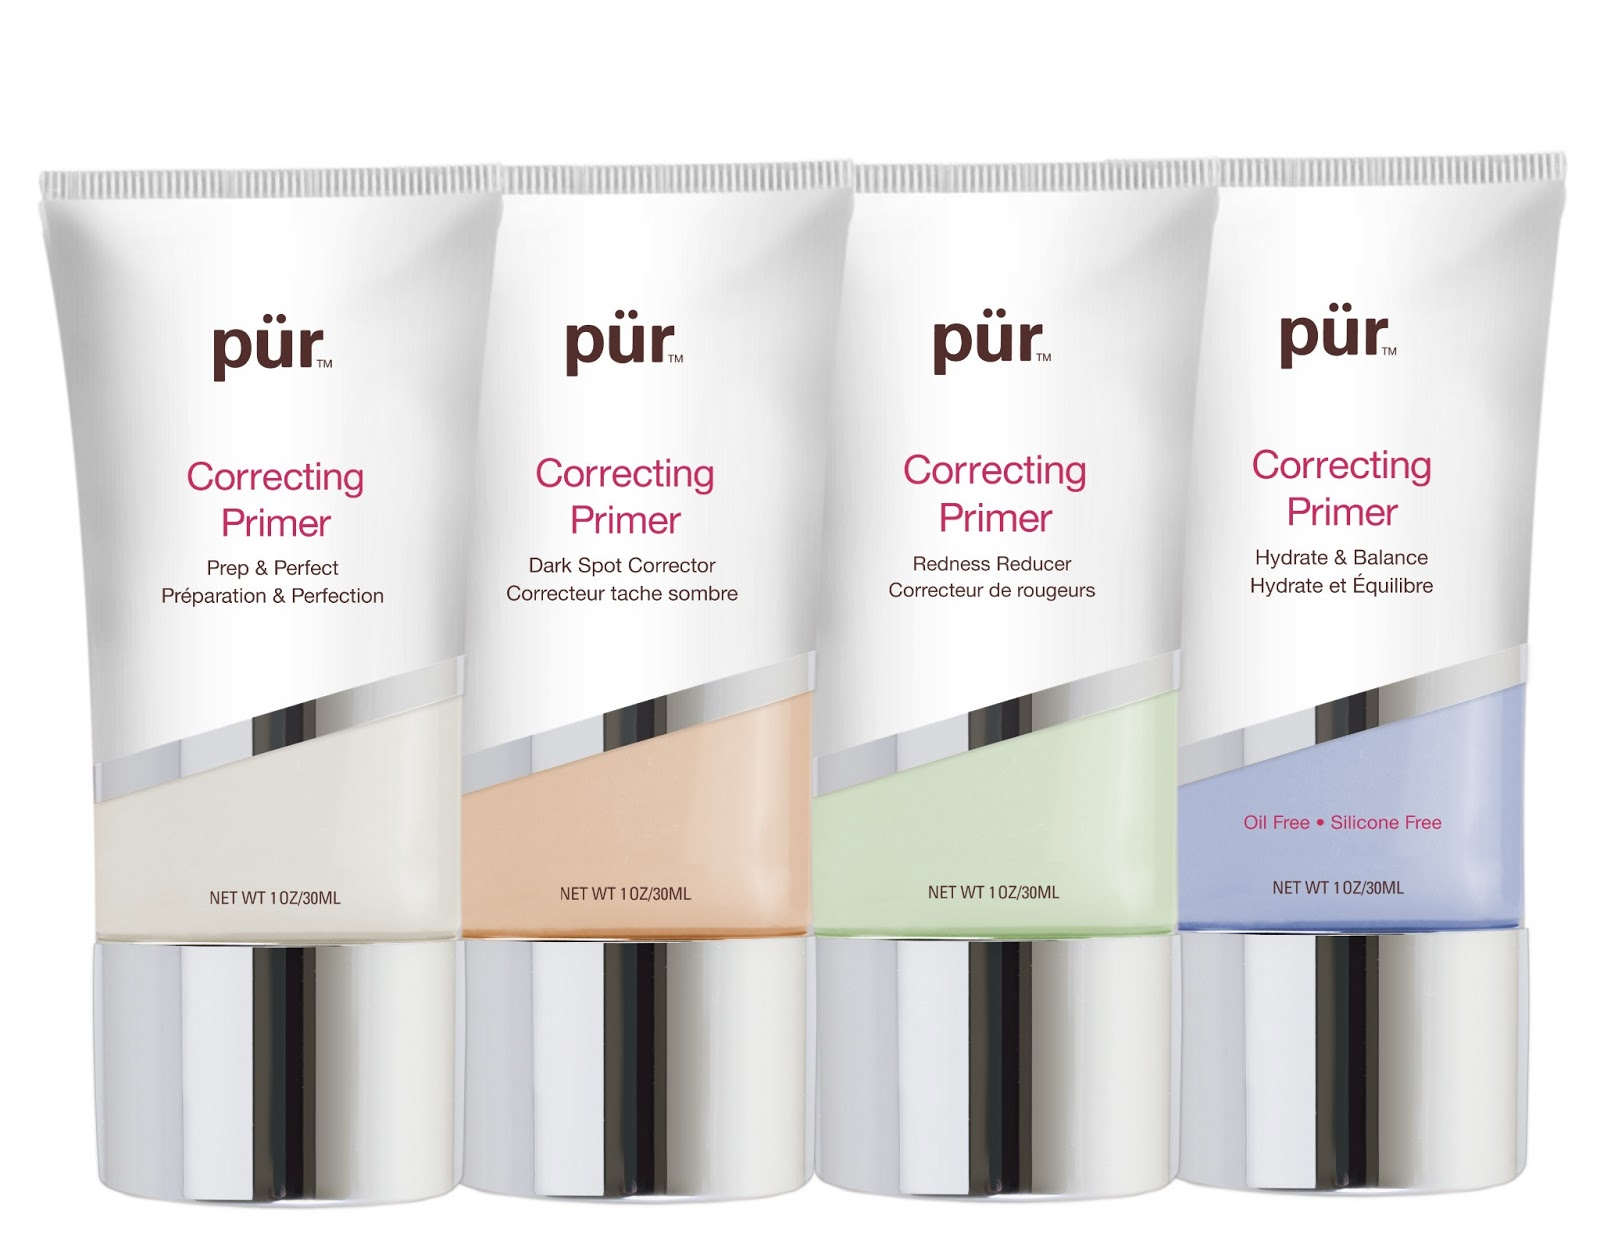 pur correcting primer hydrate and balance review